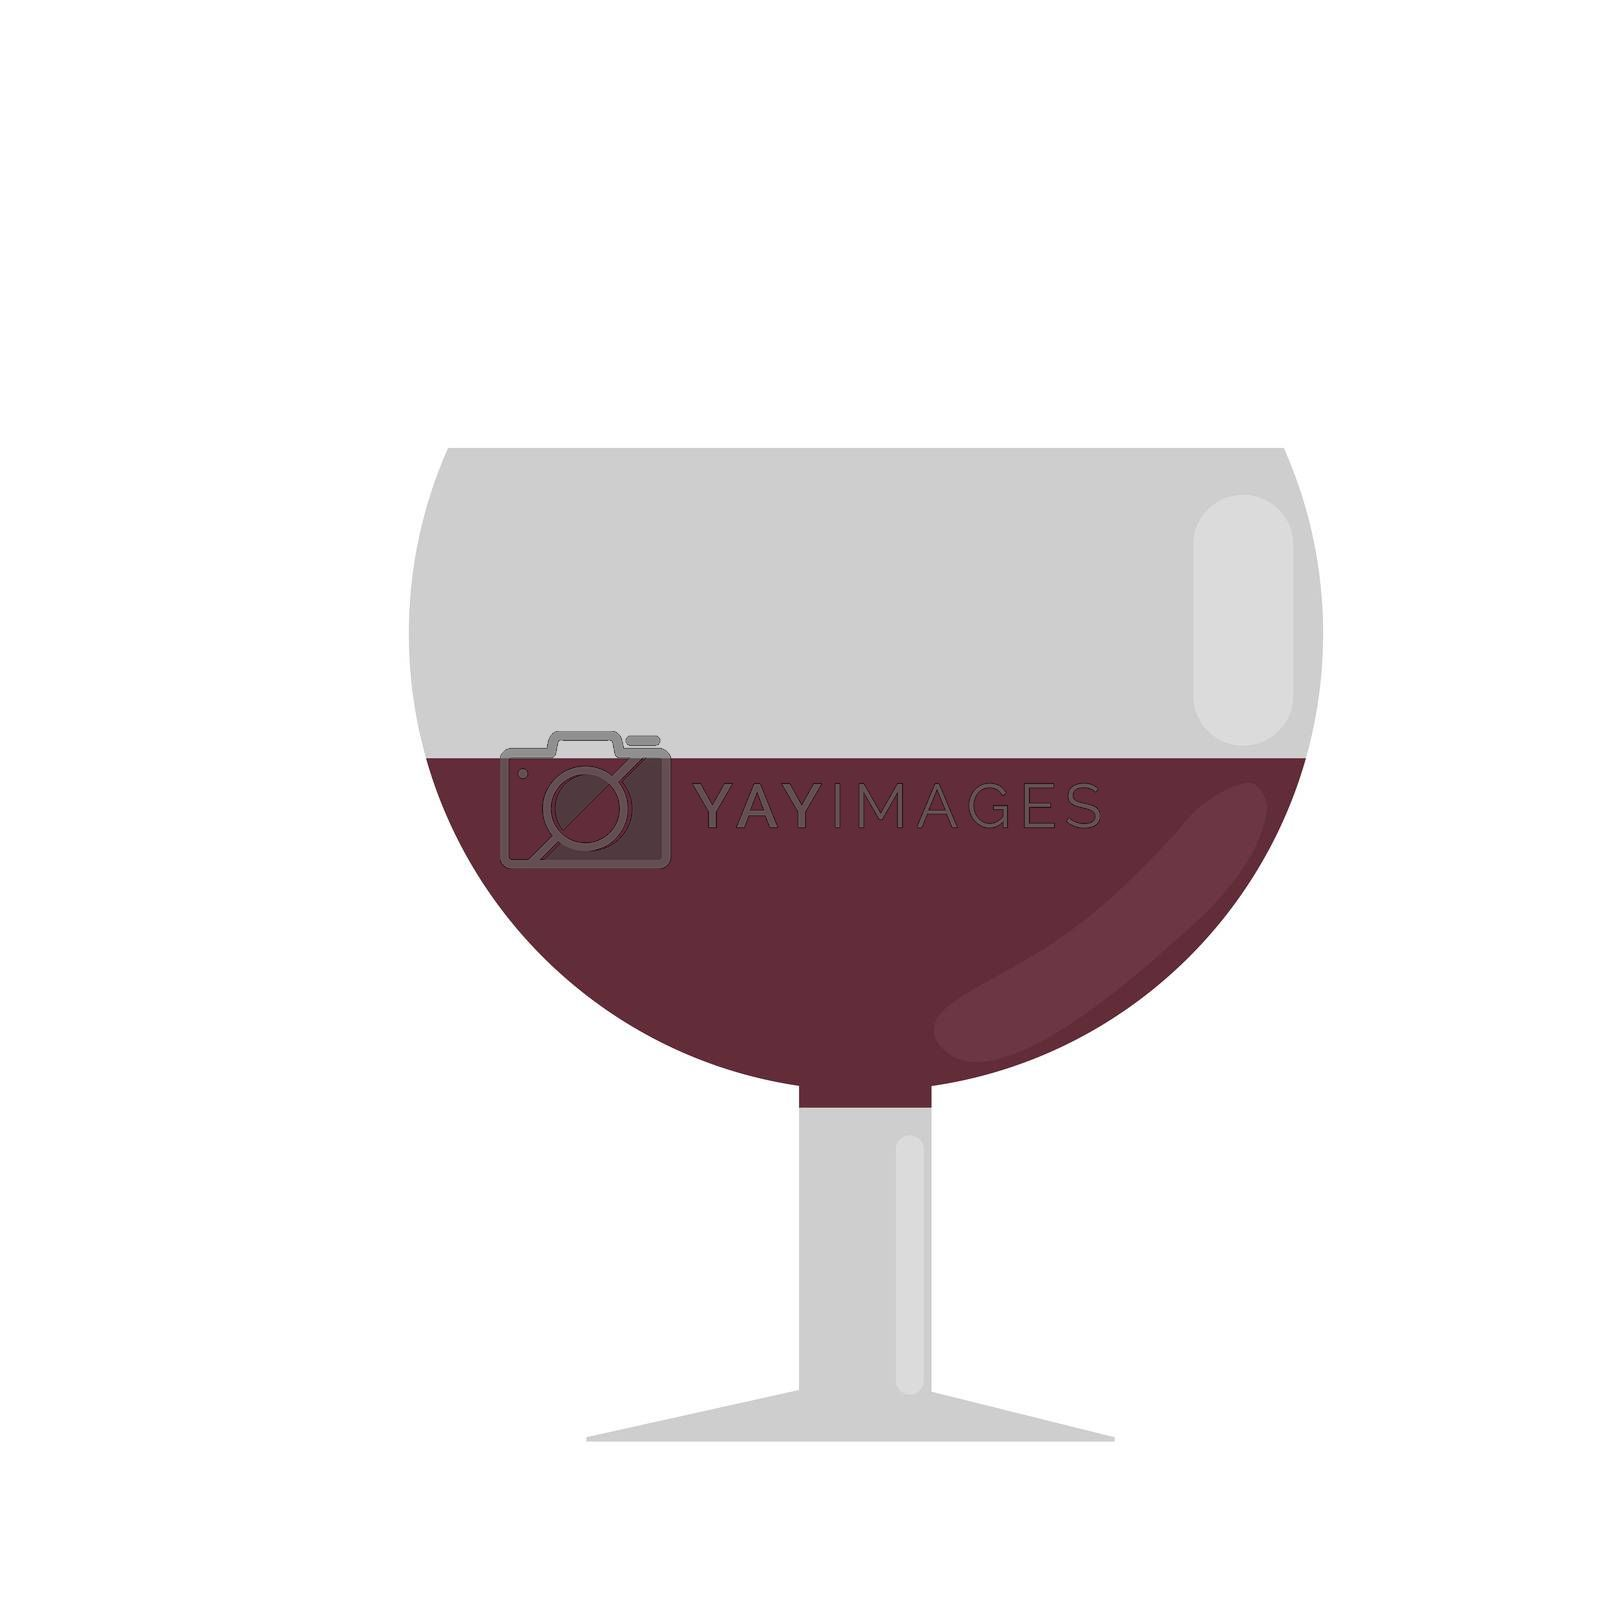 a glass of red wine. illustration in flat style.